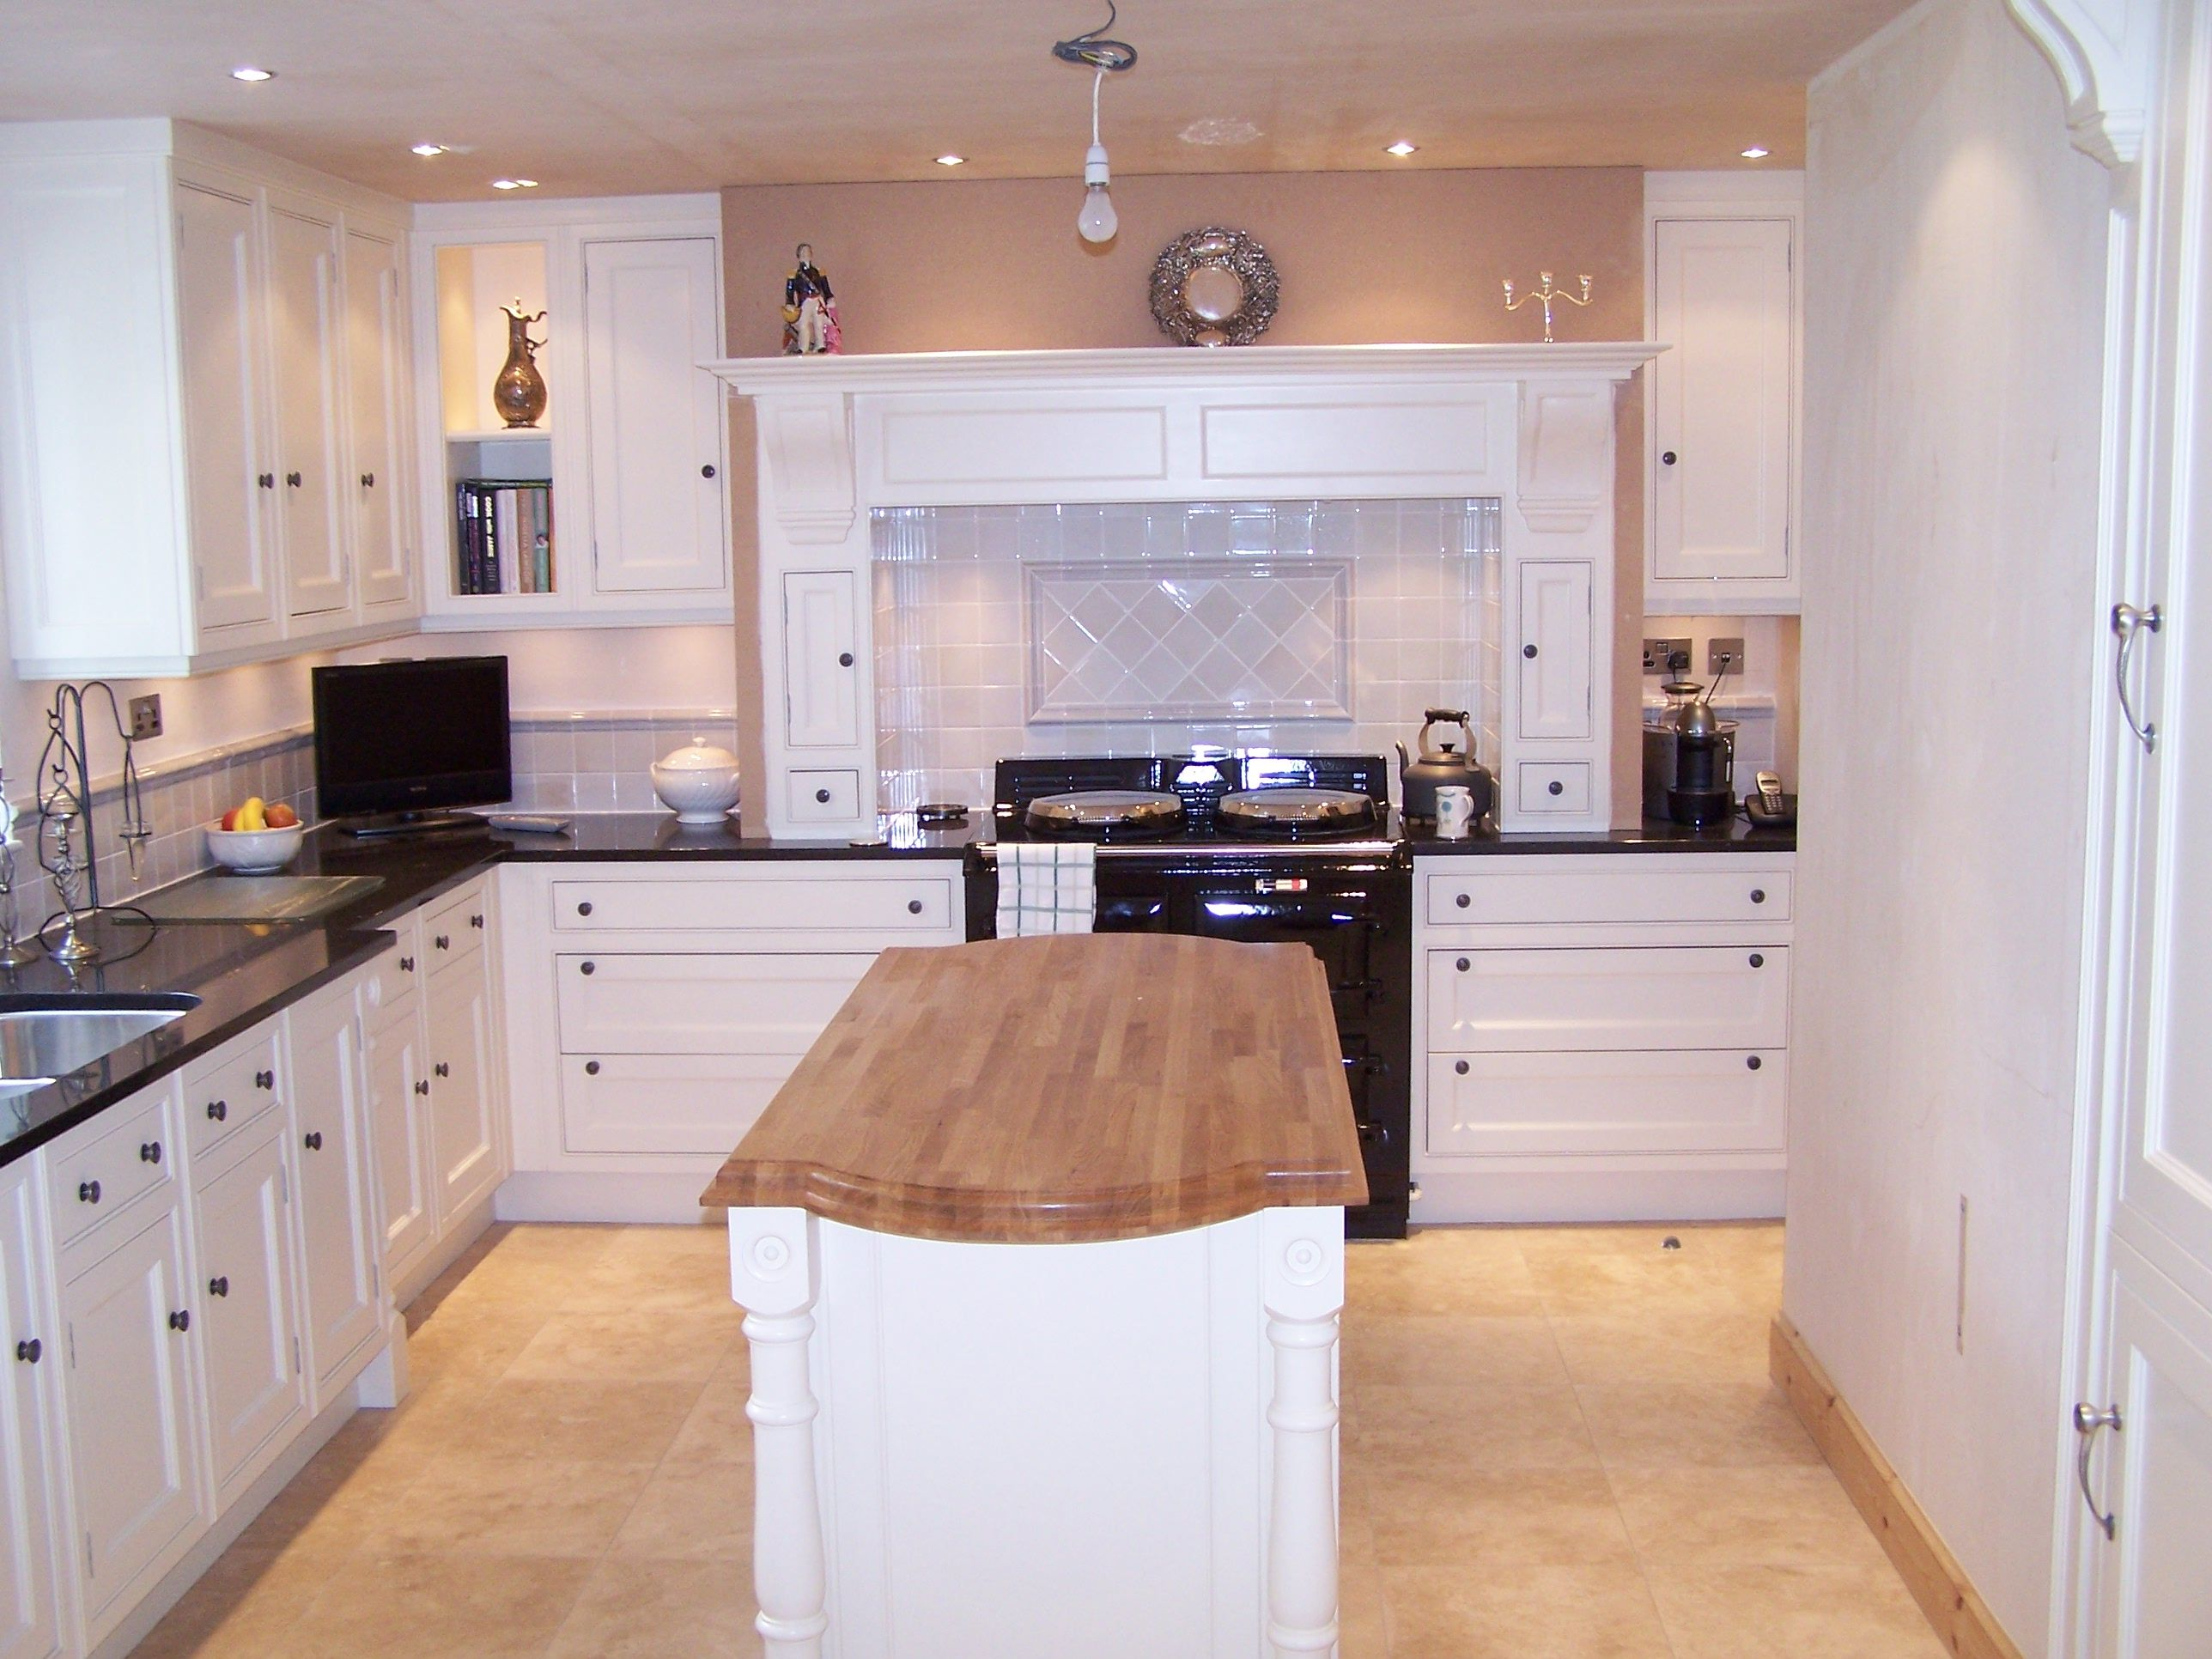 Clive Christian Edwardian kitchen in ivory painted finish | kitchens ...